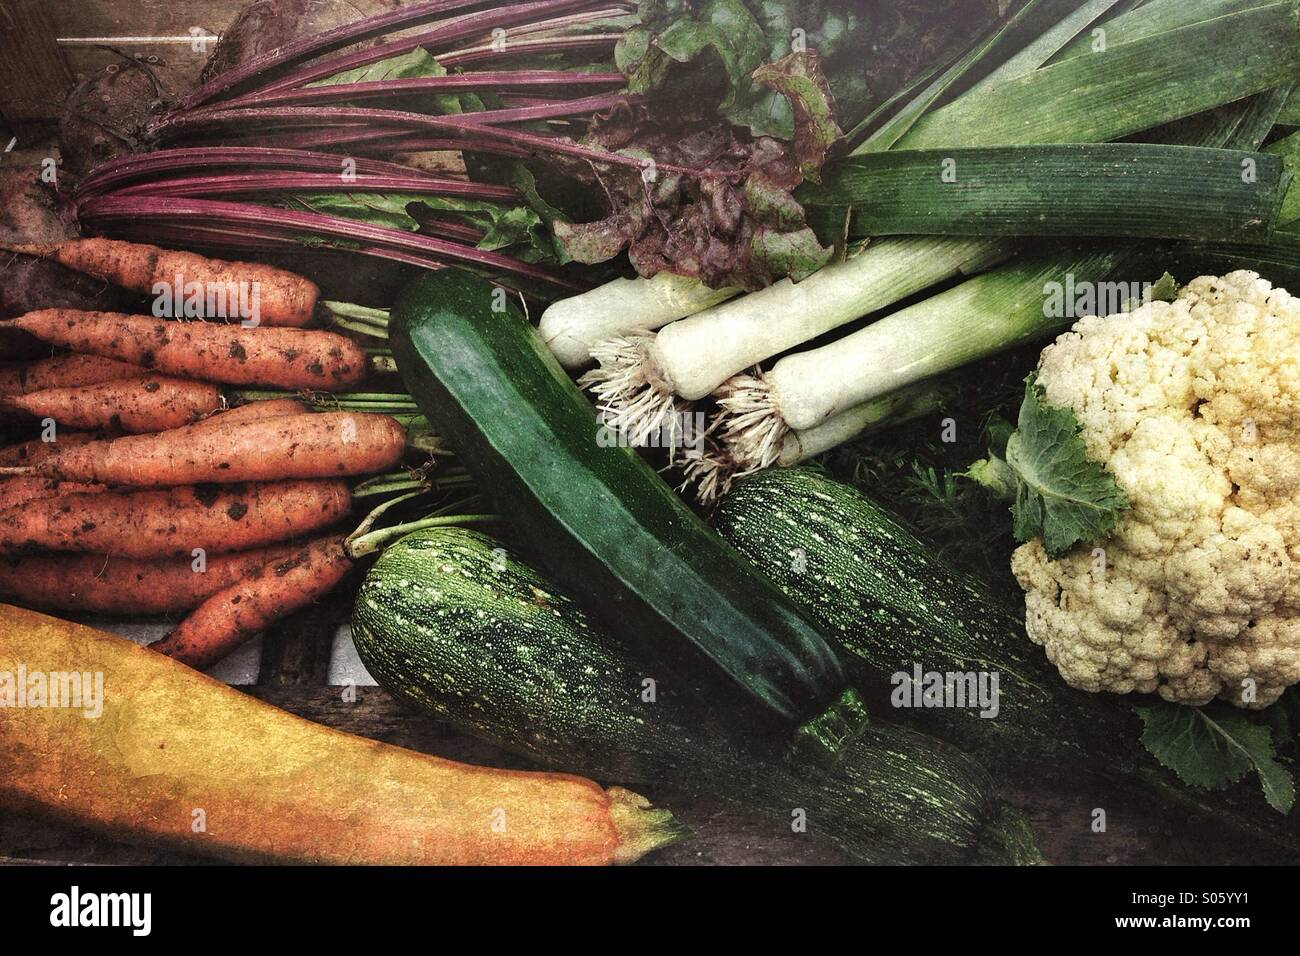 Fresh picked organic vegetables from a home garden - Stock Image